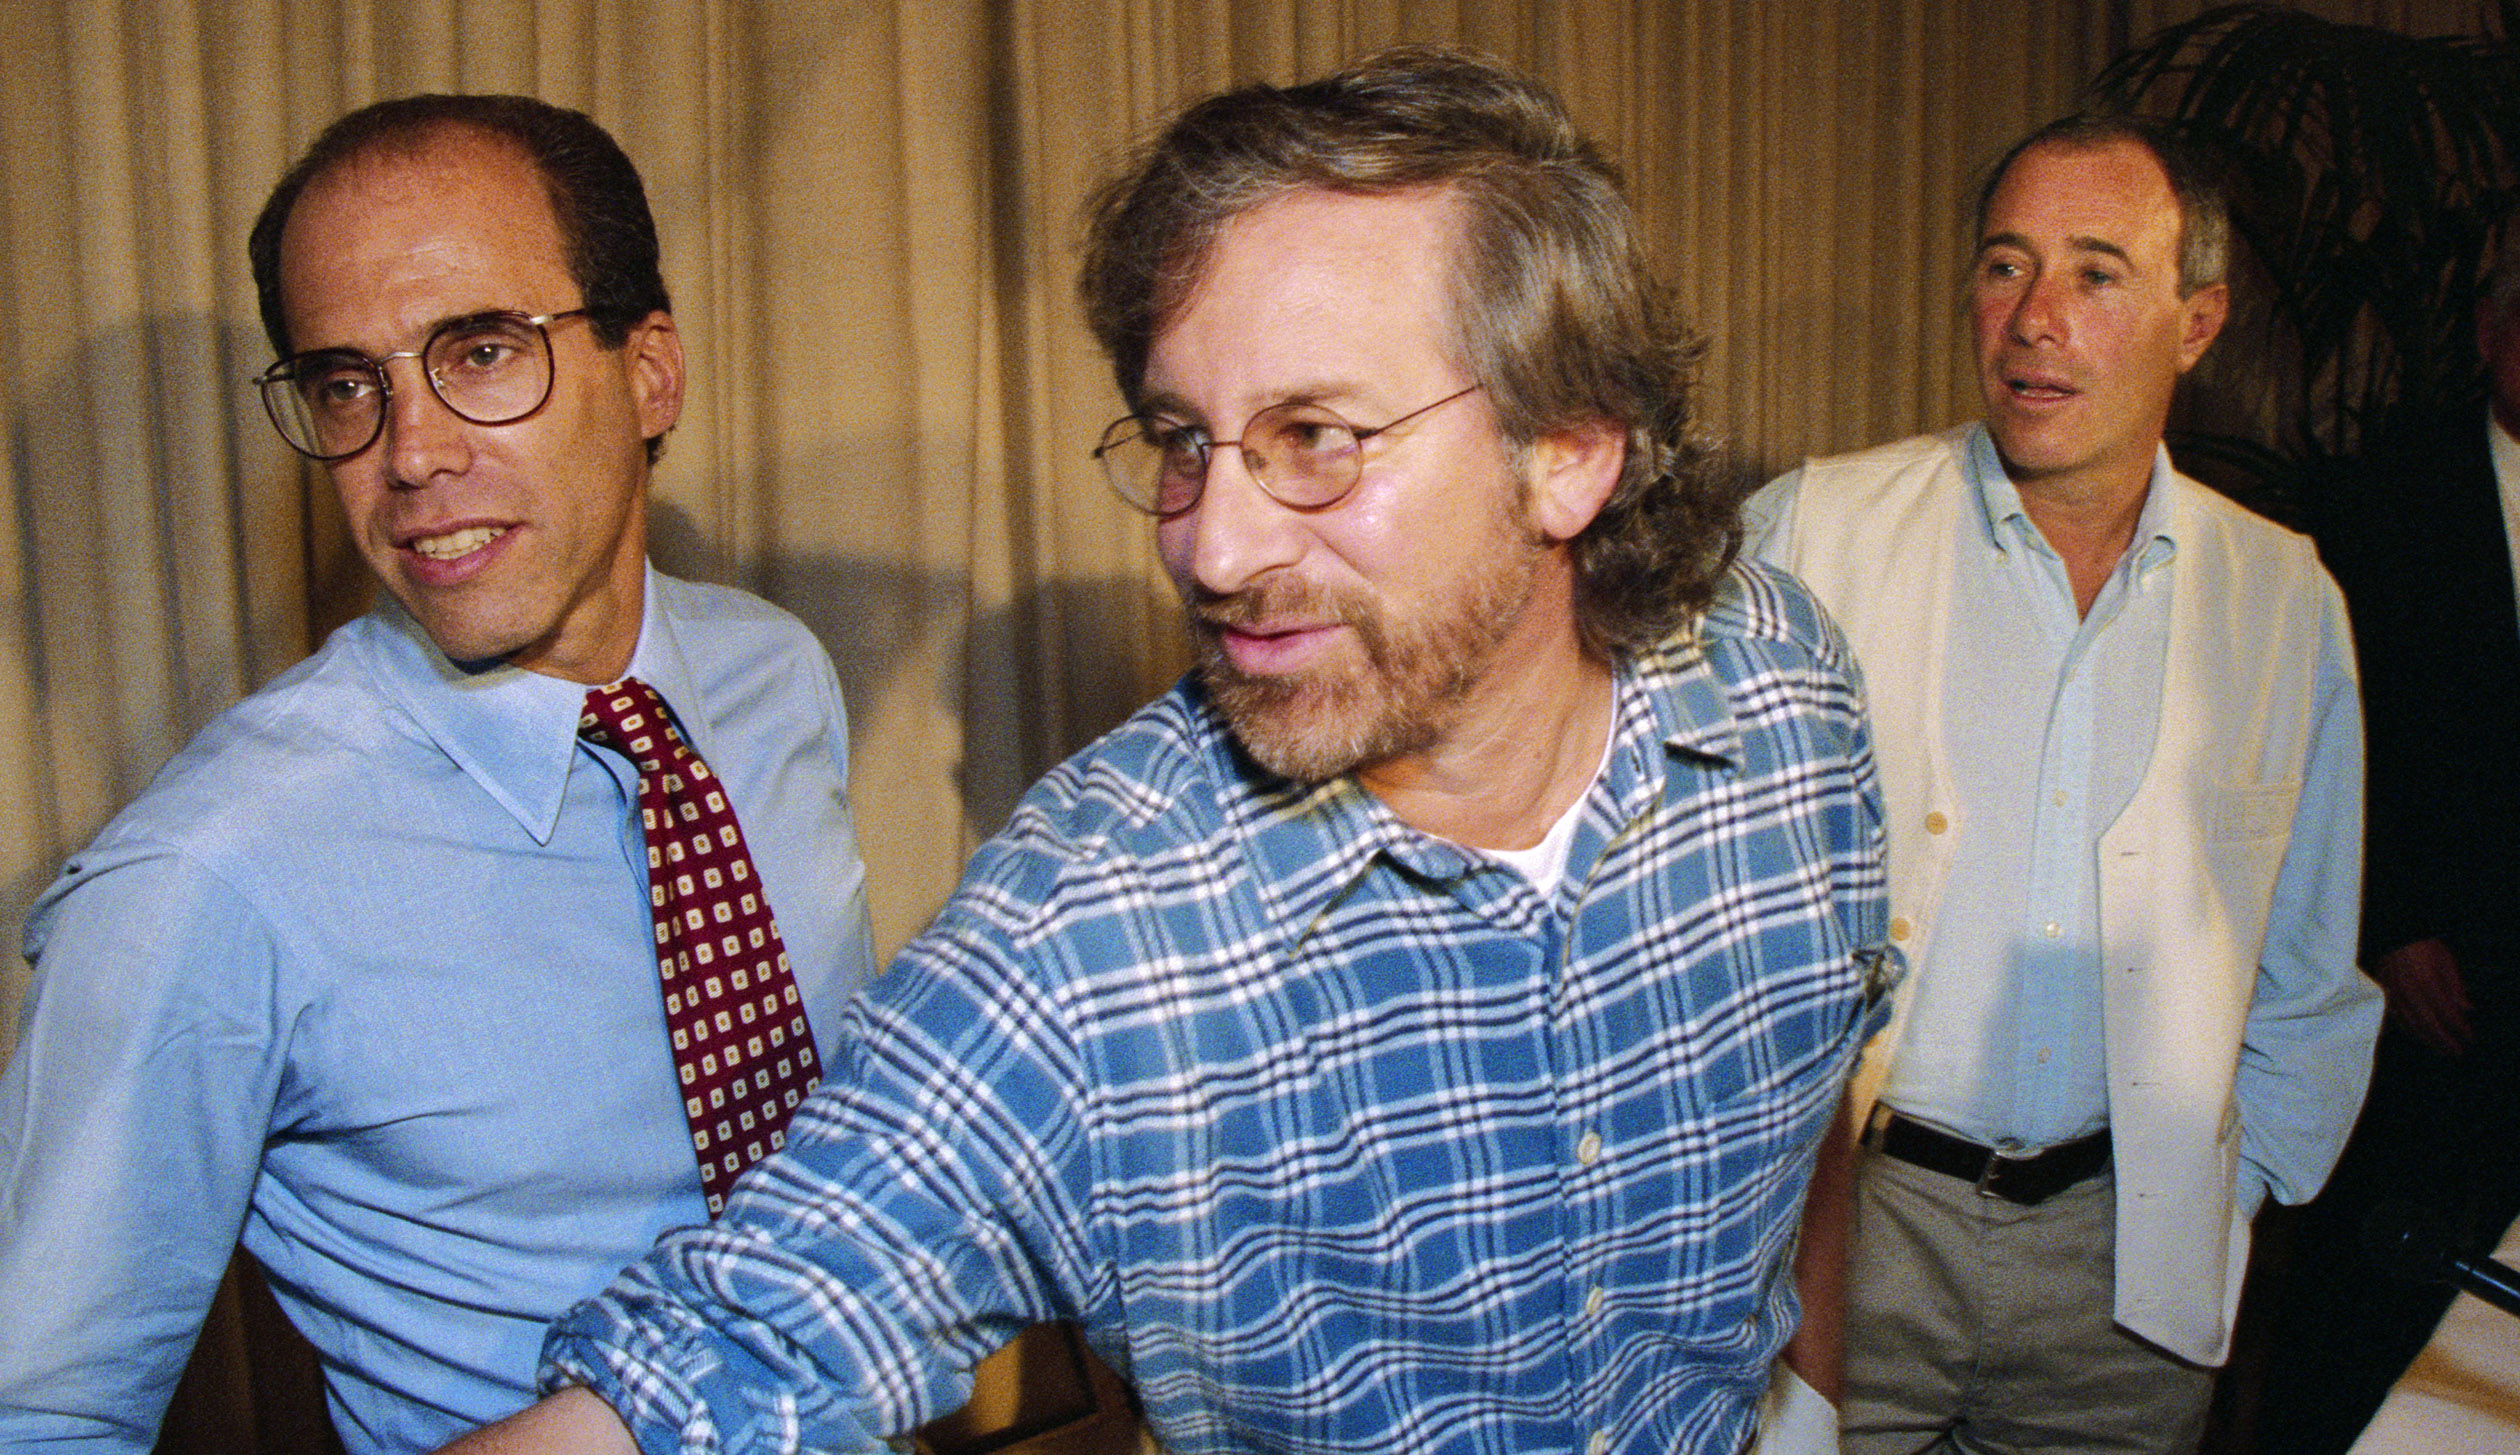 Jeffrey Katzenberg (left) with partners Steven Spielberg and David Geffen, announcing the launch of DreamWorks SKG in October 1994. DreamWorks Animation split off as an independent company with Katzenberg as CEO in 2004